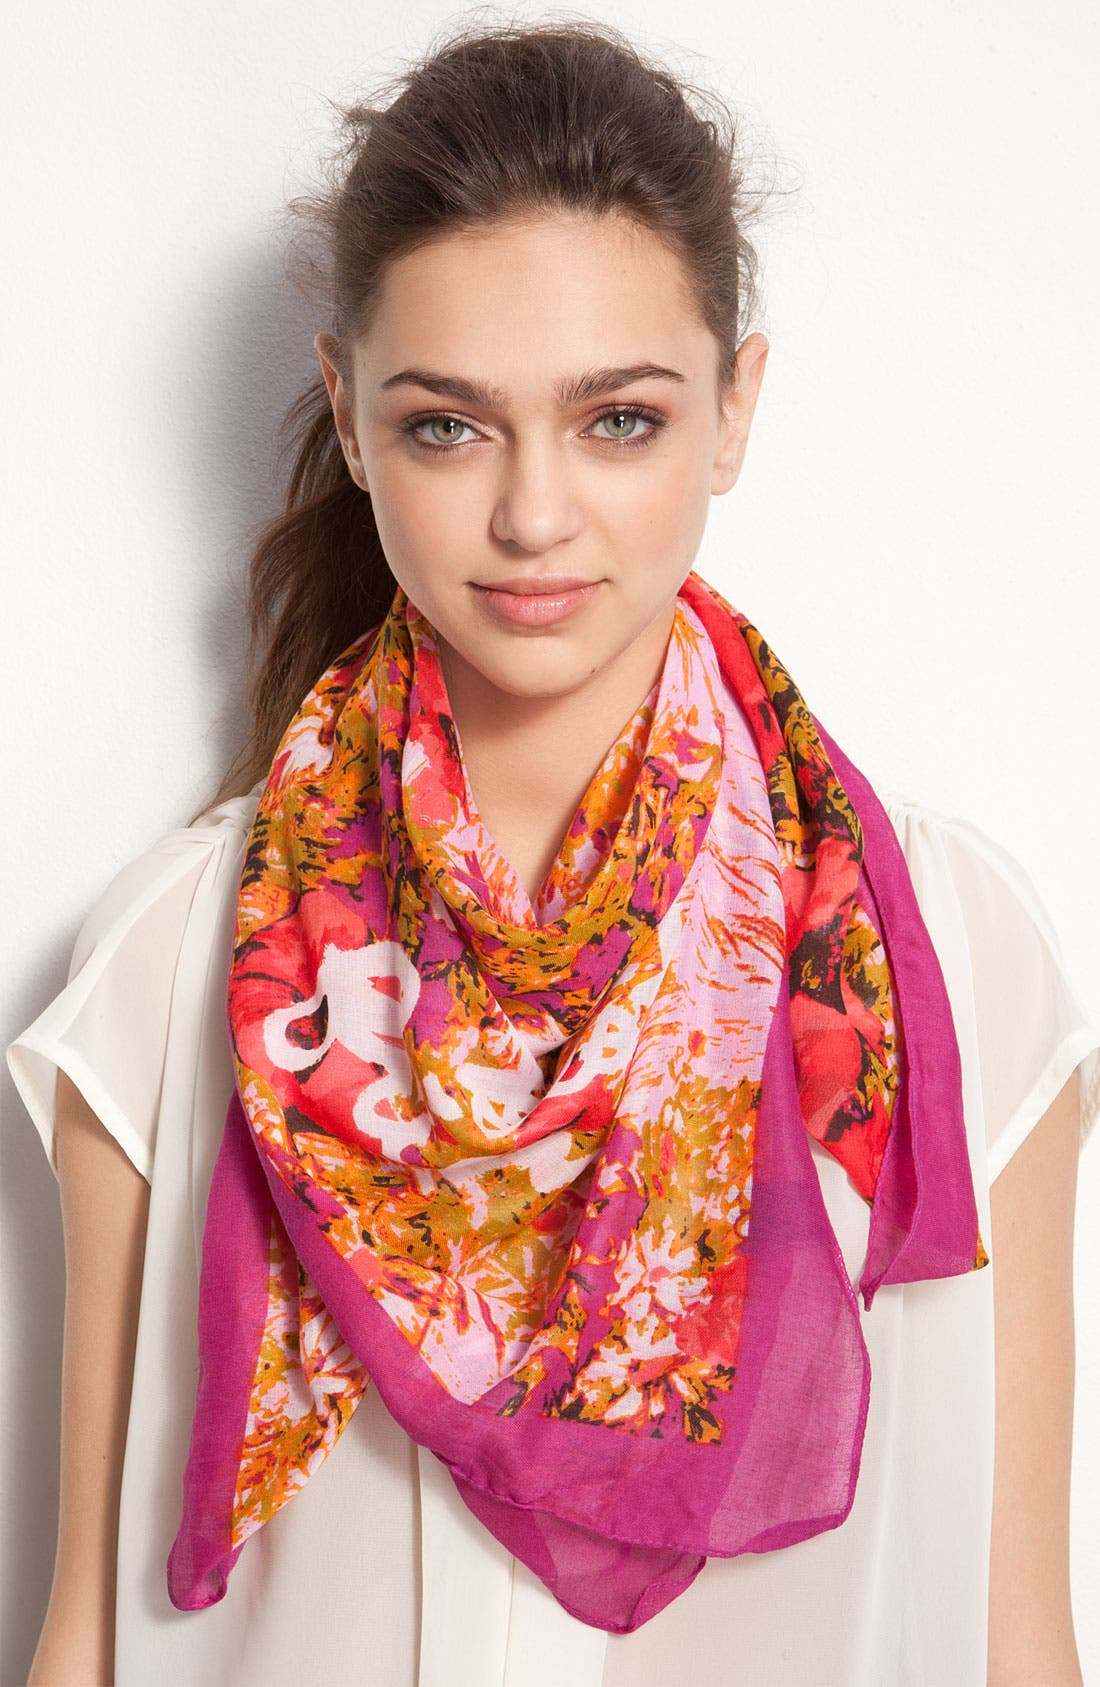 Alternate Image 1 Selected - Made of Me 'Best Friends' Floral Scarf